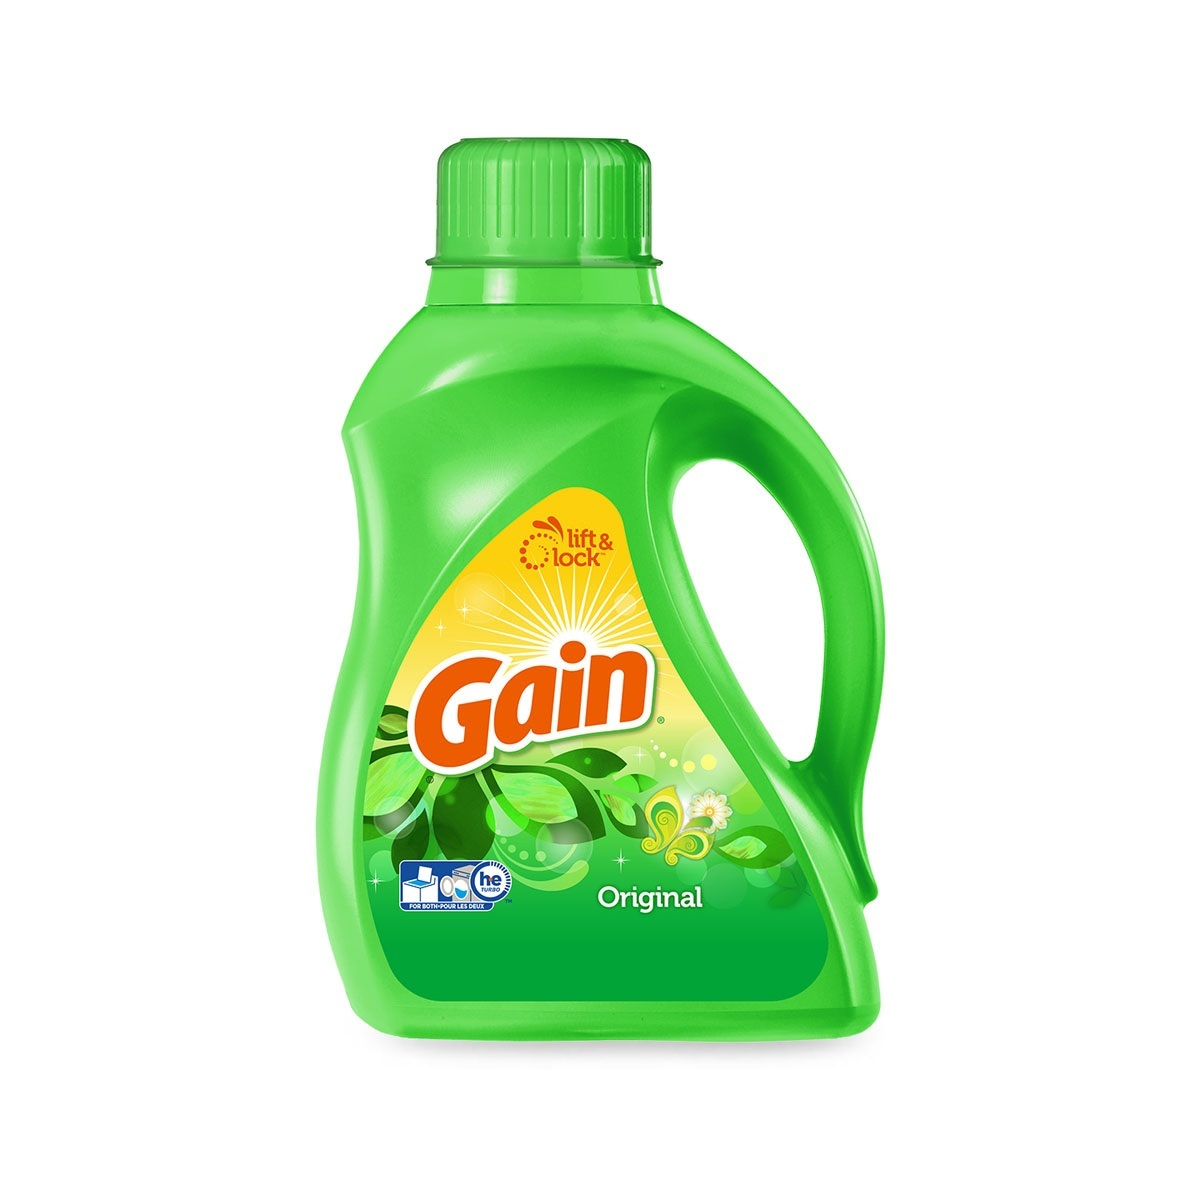 Gain Original Laundry Detergent Reviews In Laundry Care